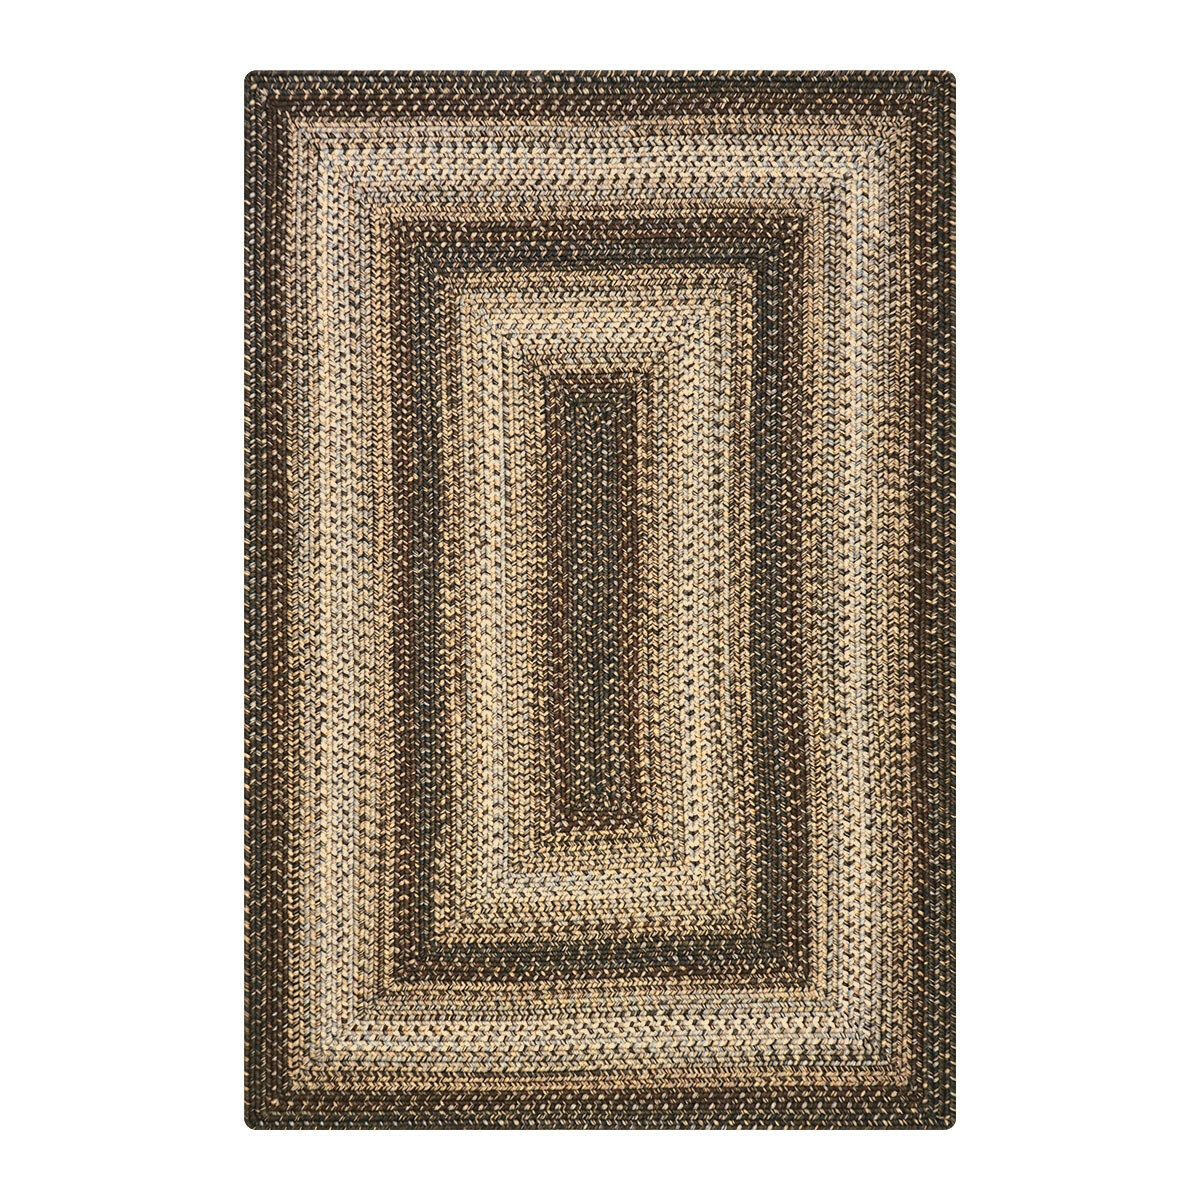 Homespice Decor Oval Abstract Hand Braided Brown Area Rugs Wayfair